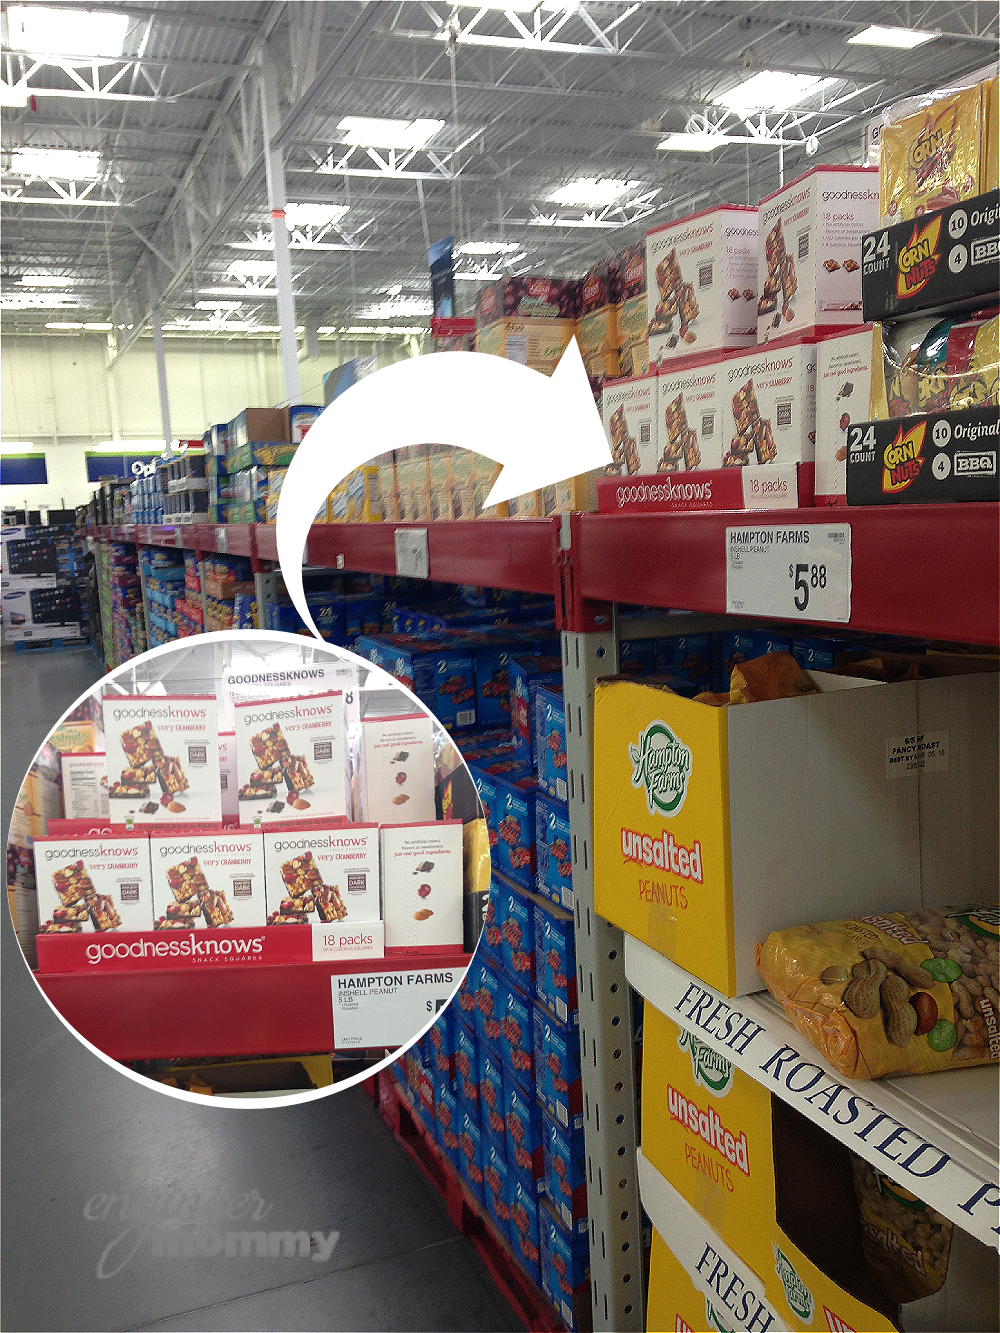 Finding goodnessknows® snack squares at Sam's Club